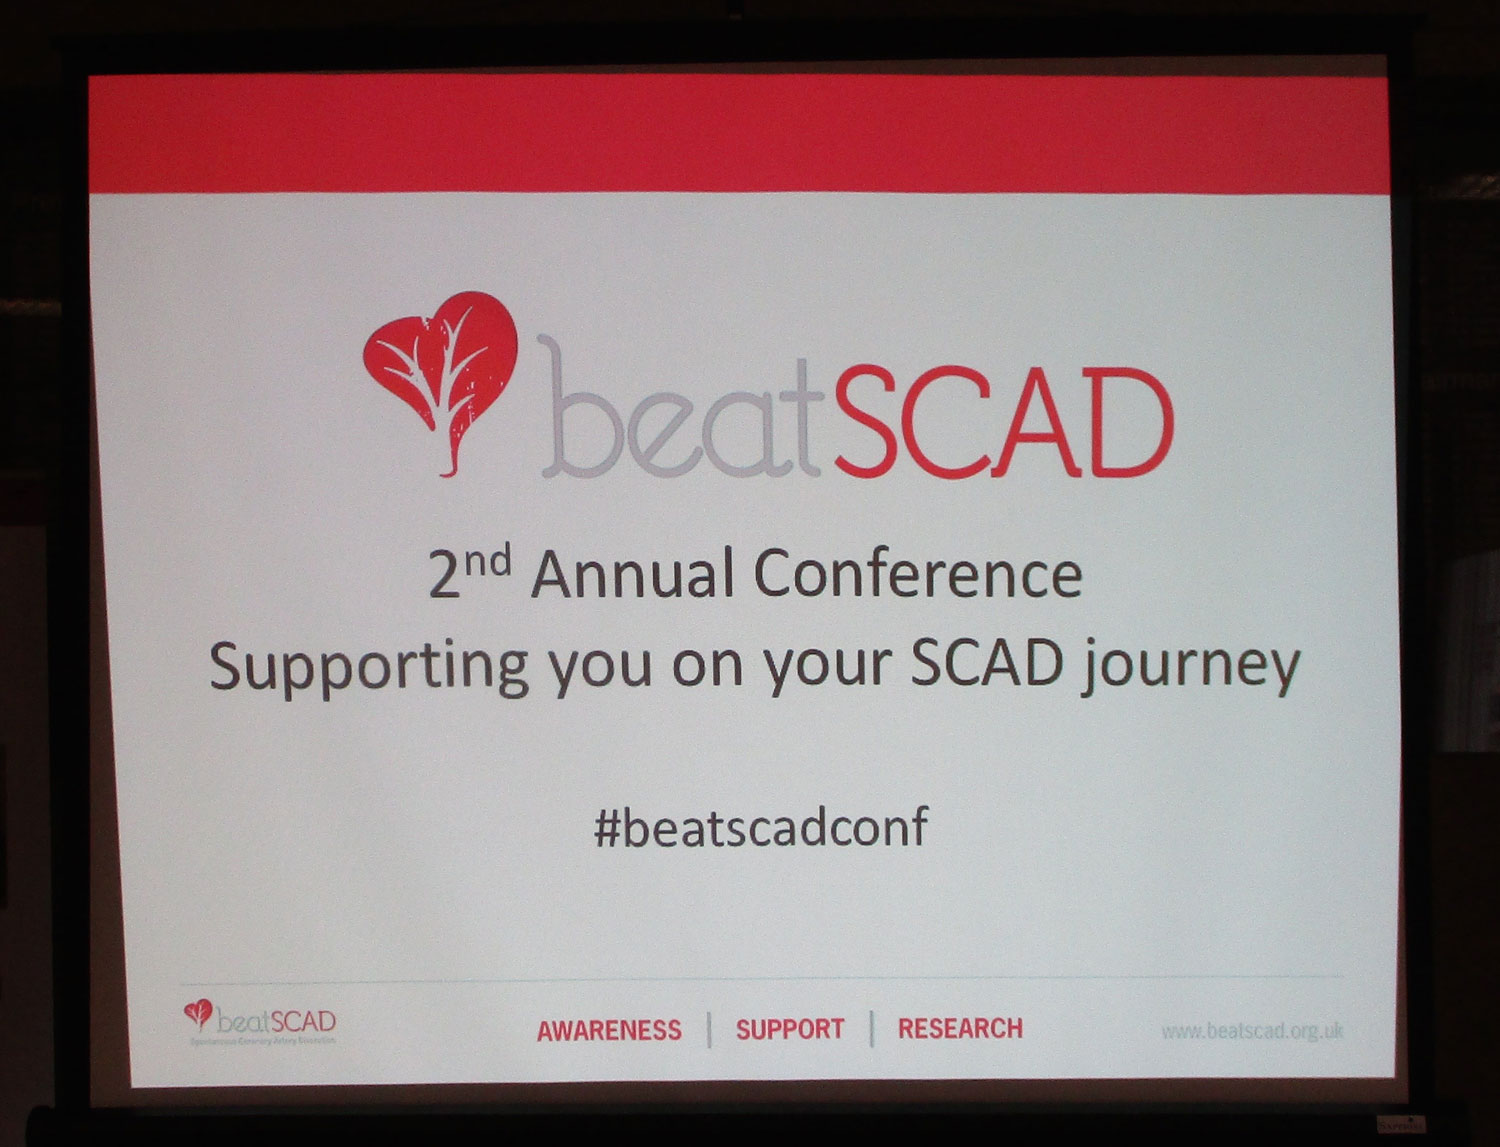 Beat SCAD's second conference focused on supporting patients, families and friends